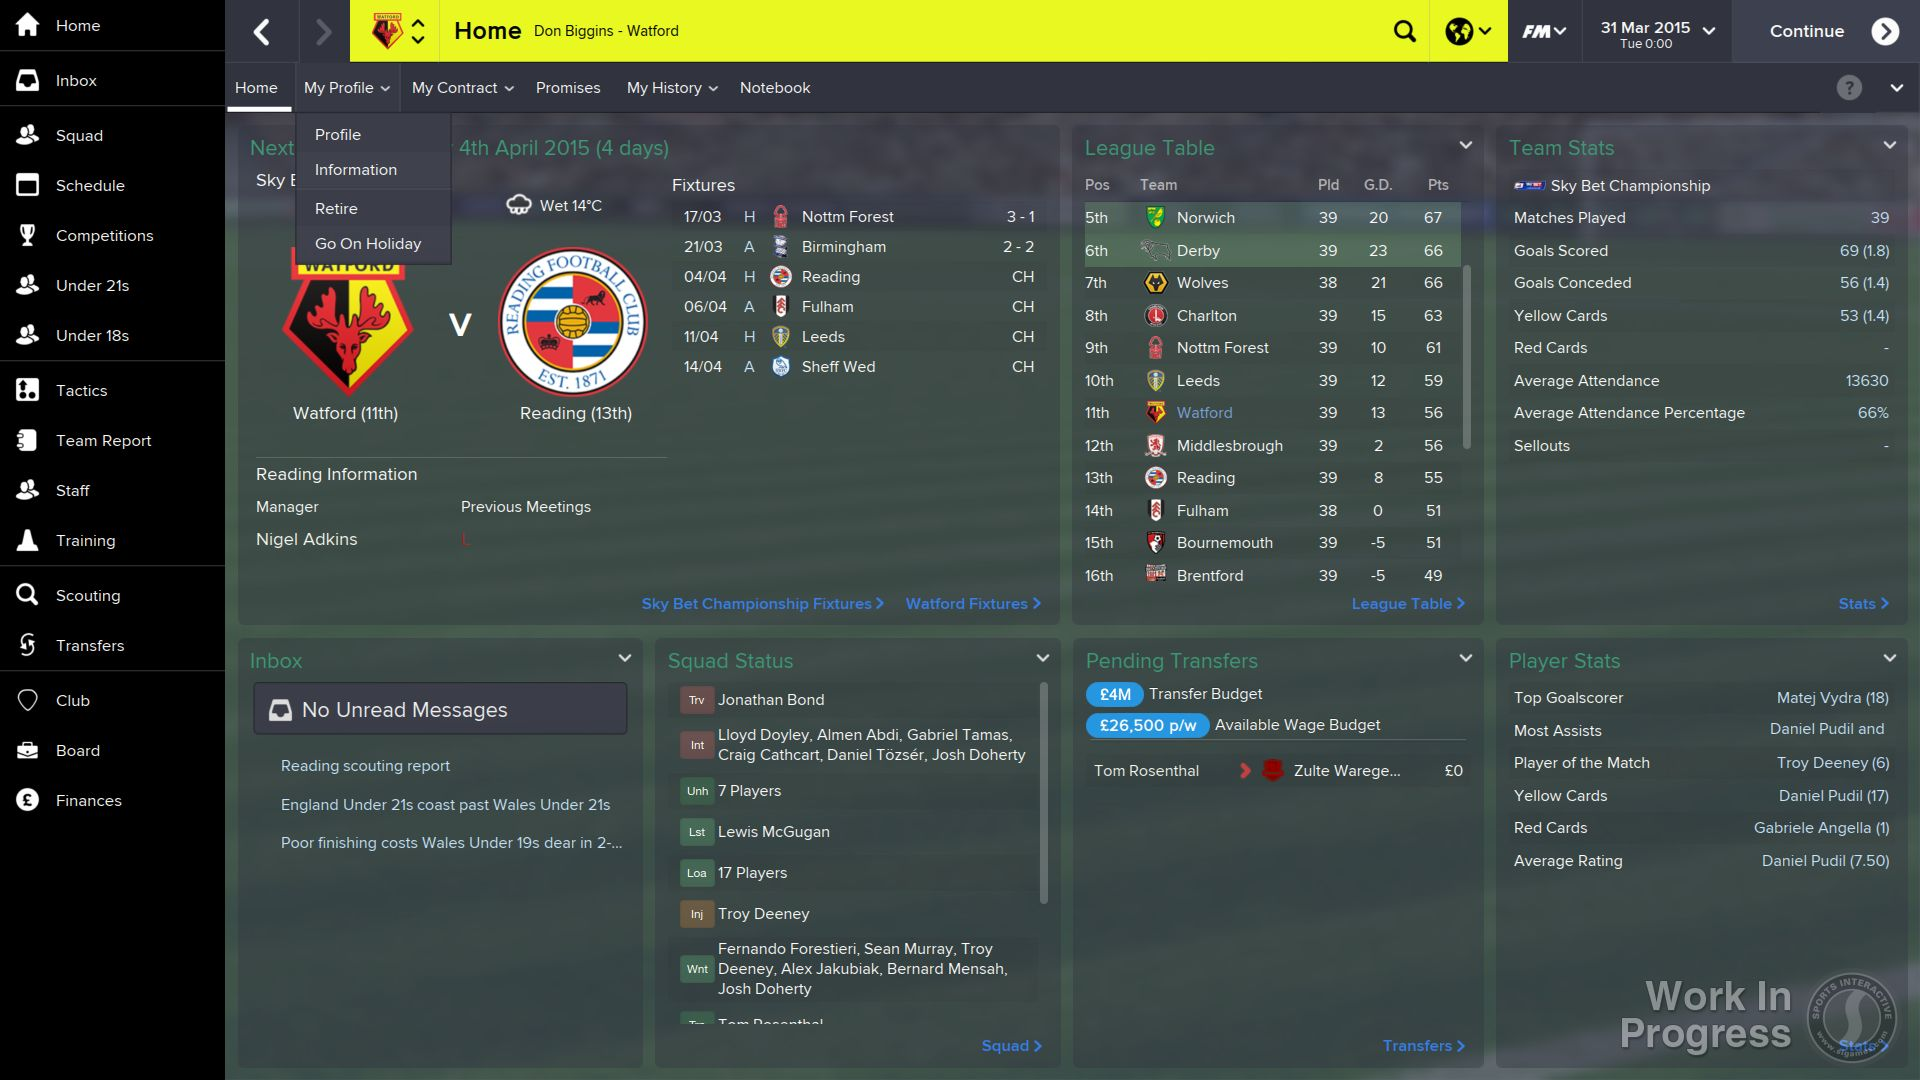 Football Manager 2015 (Steam KEY) + GIFTS AND DISCOUNTS